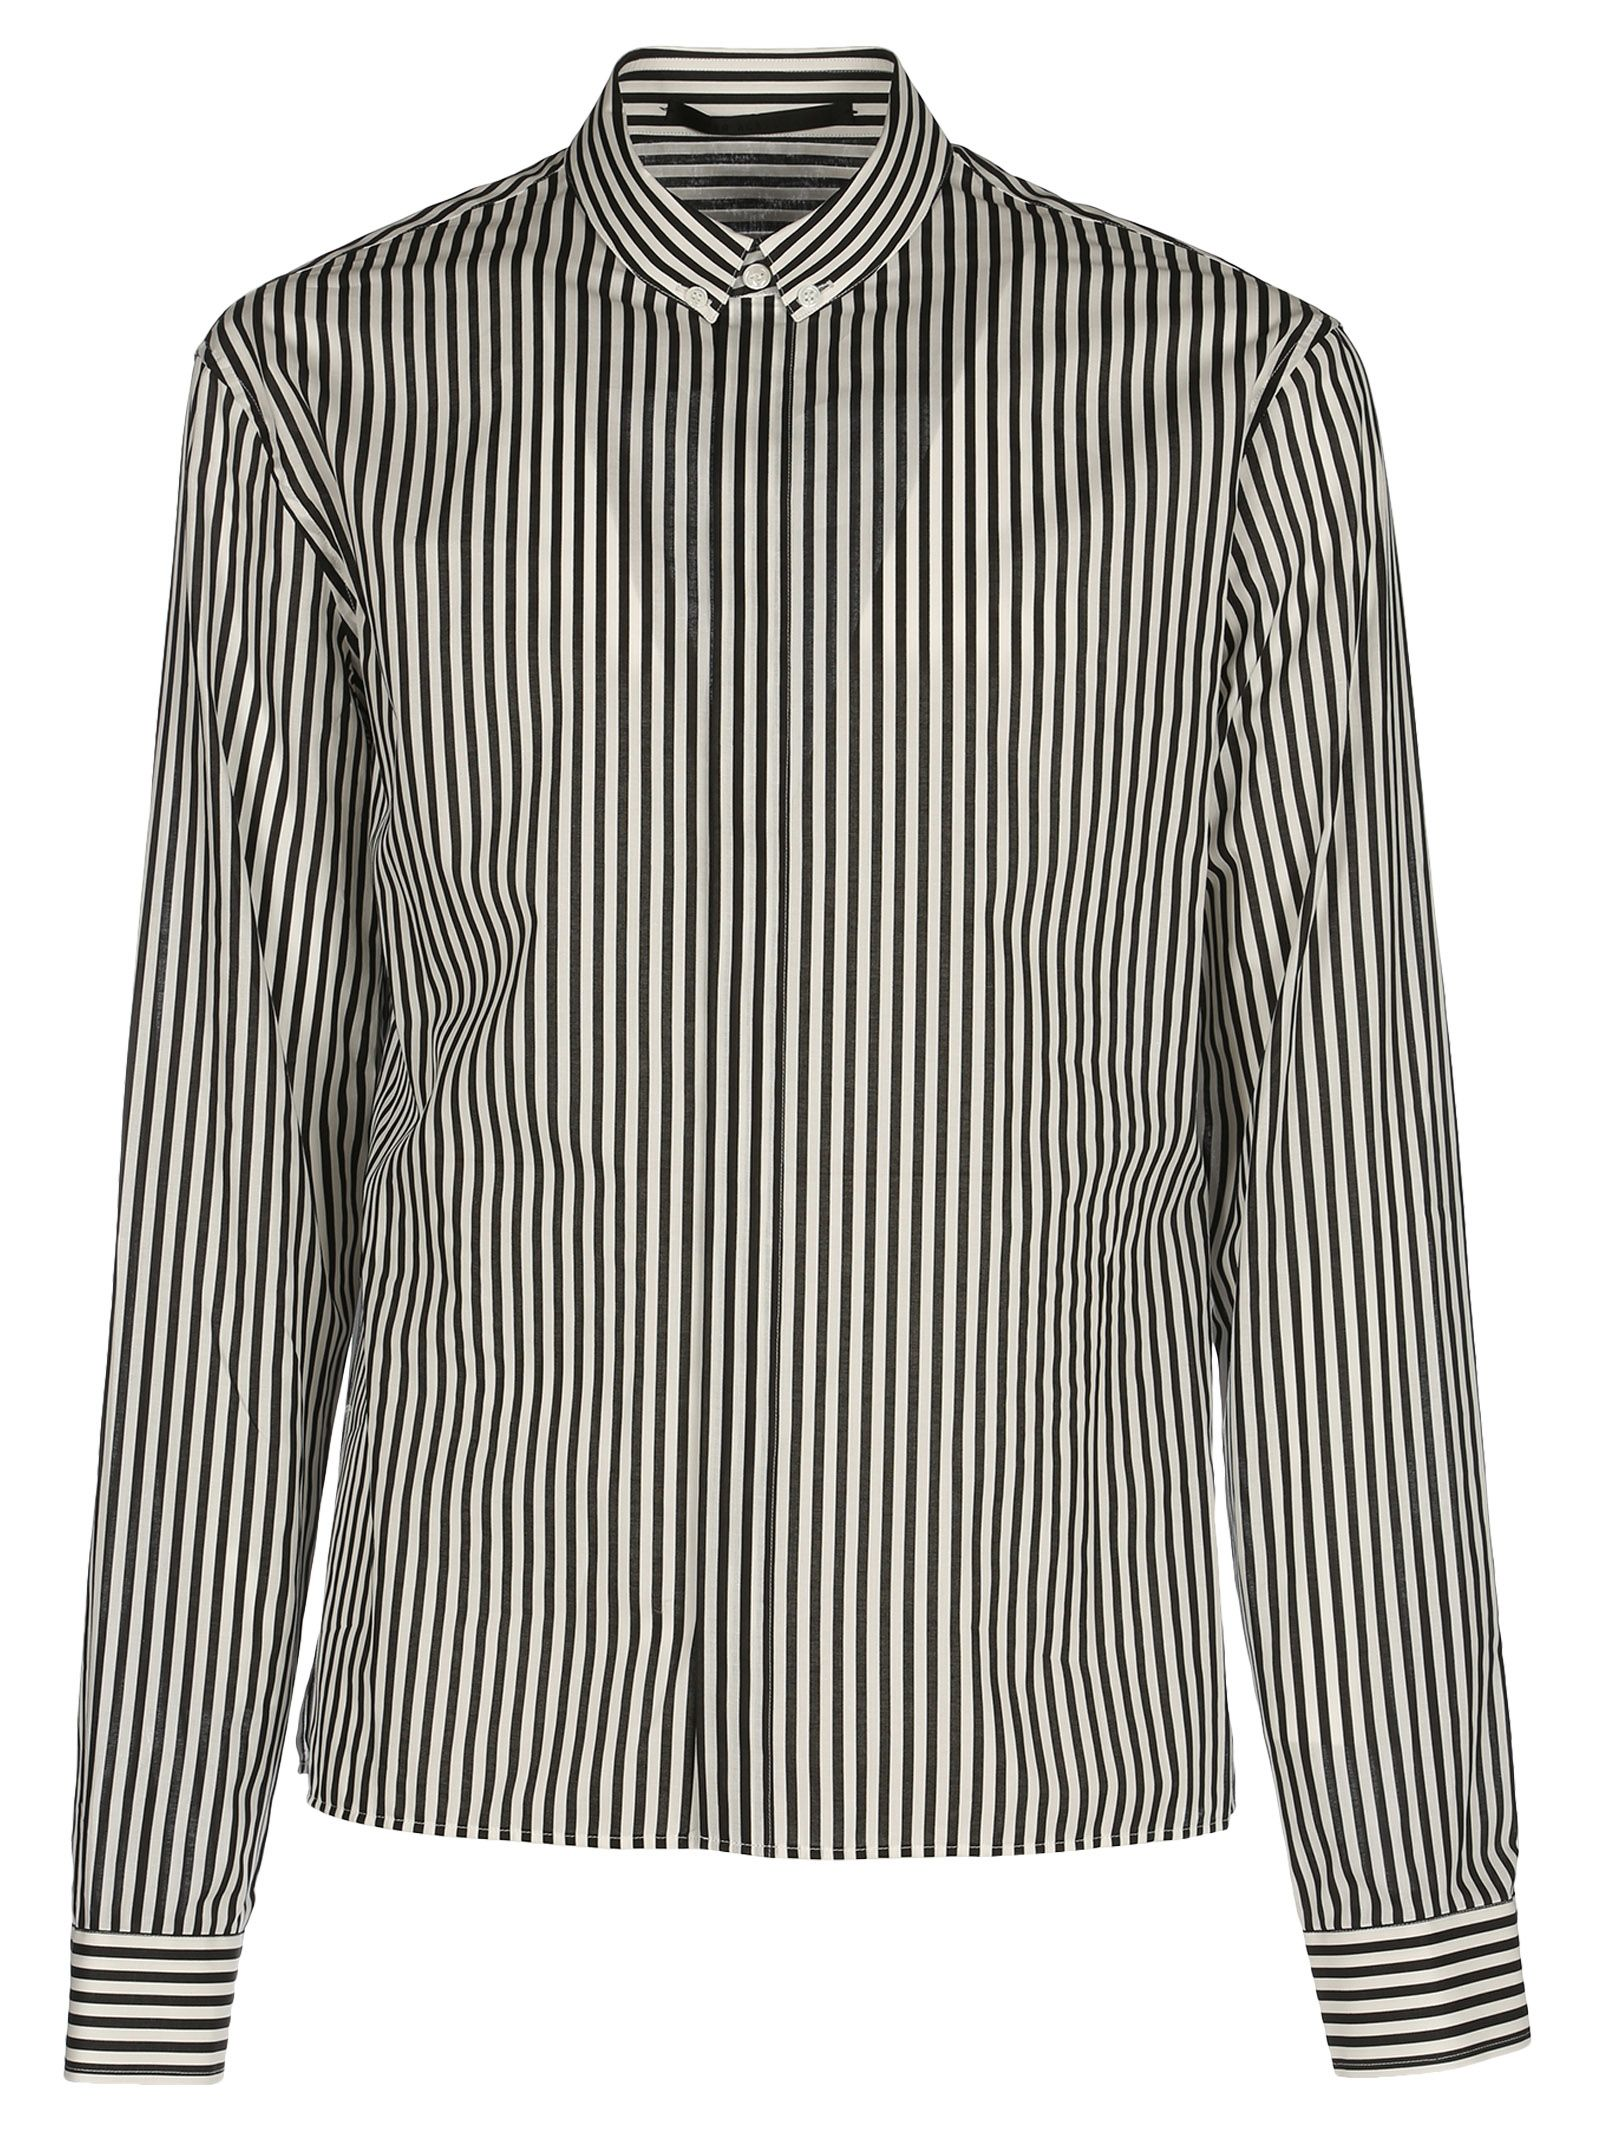 Haider Ackermann Striped Buttondown Shirt